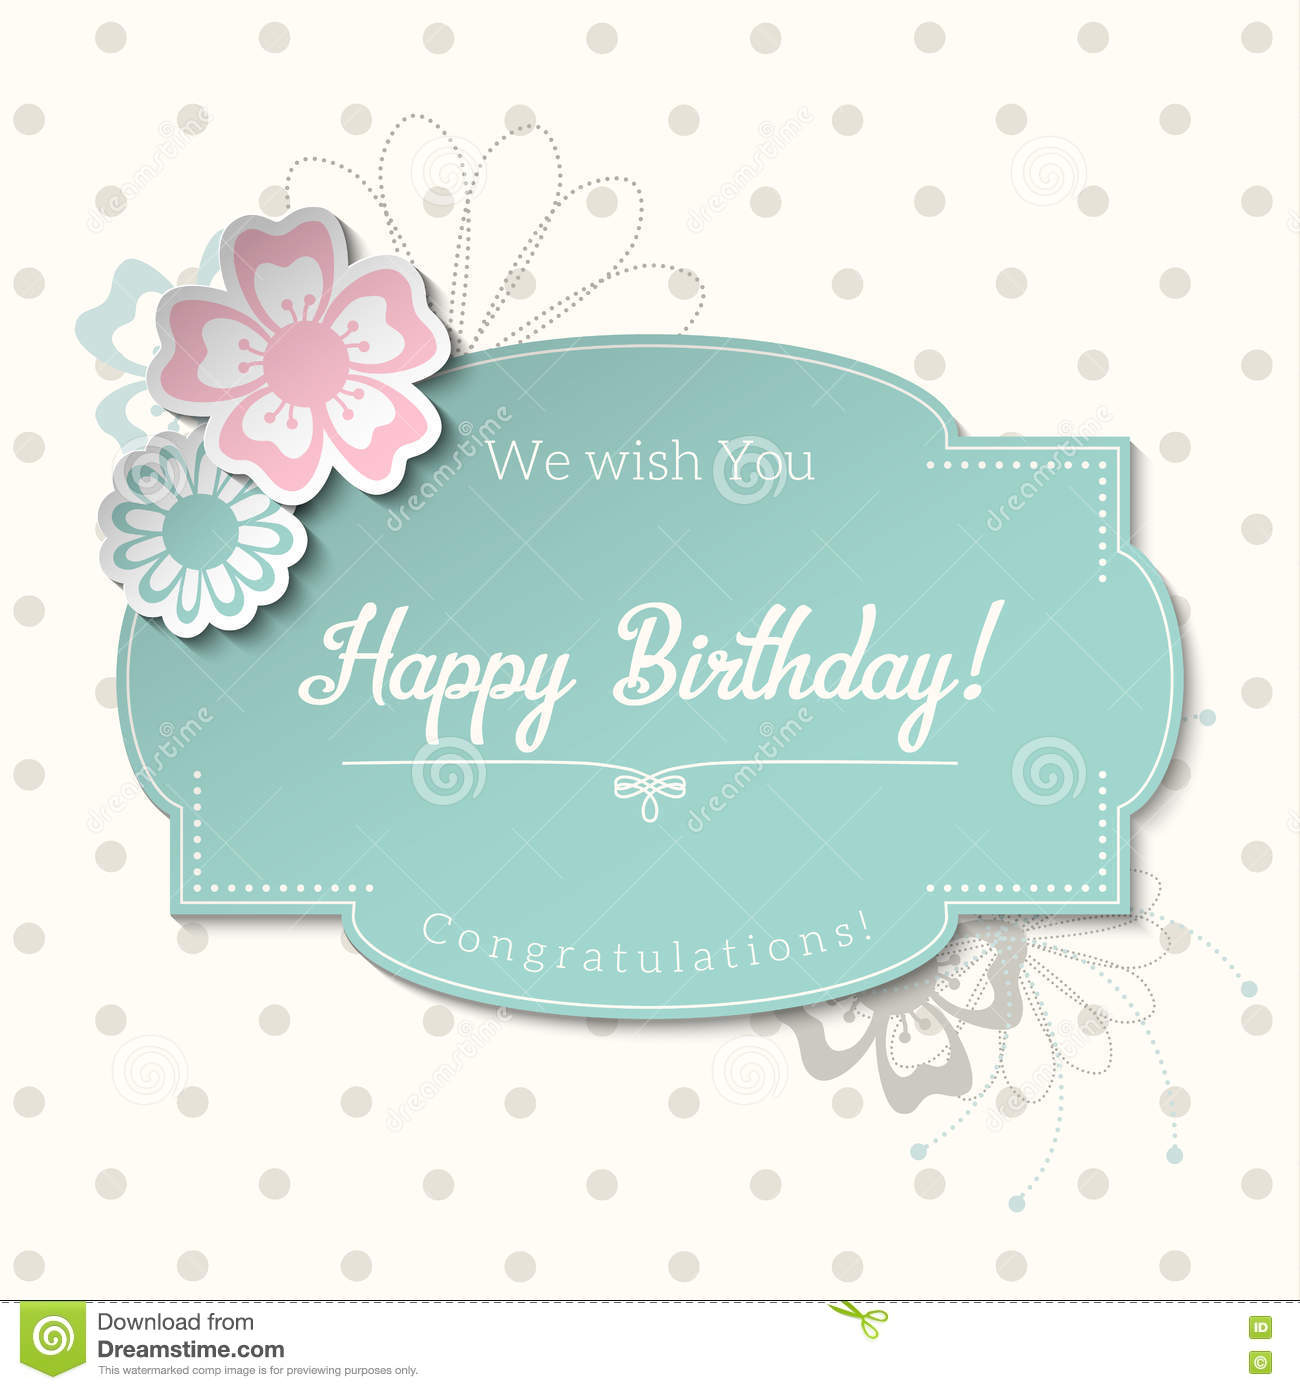 Vintage Greeting Card In Shabby Chic Style With Text Happy Birthday Illustration